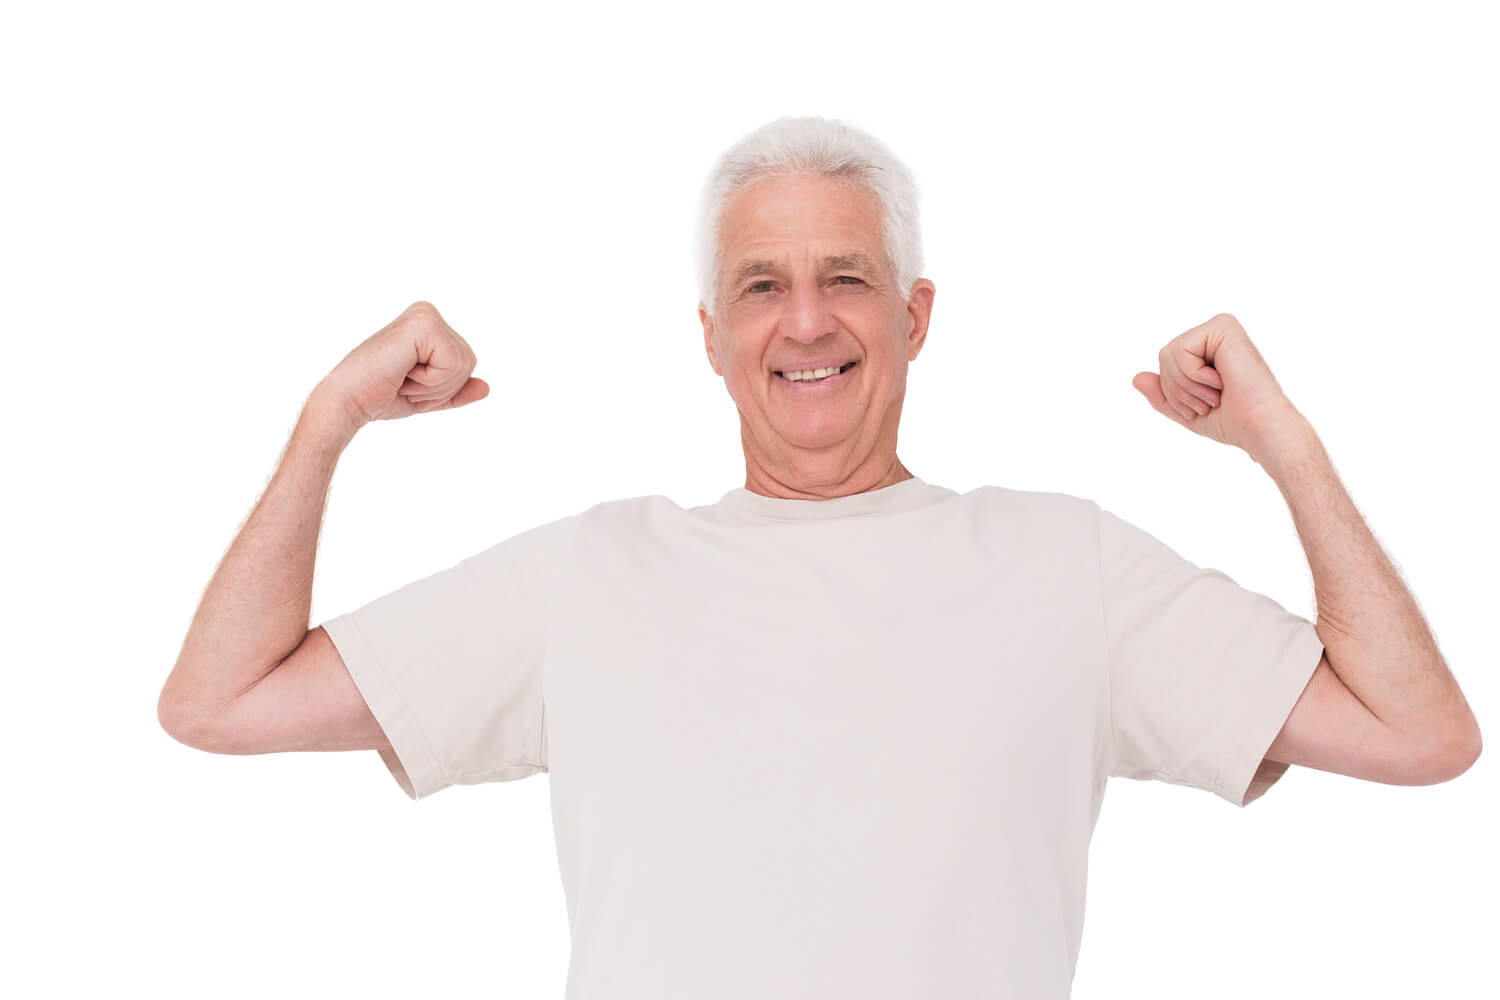 senior man flexing muscles, for testosterone replacement therapy